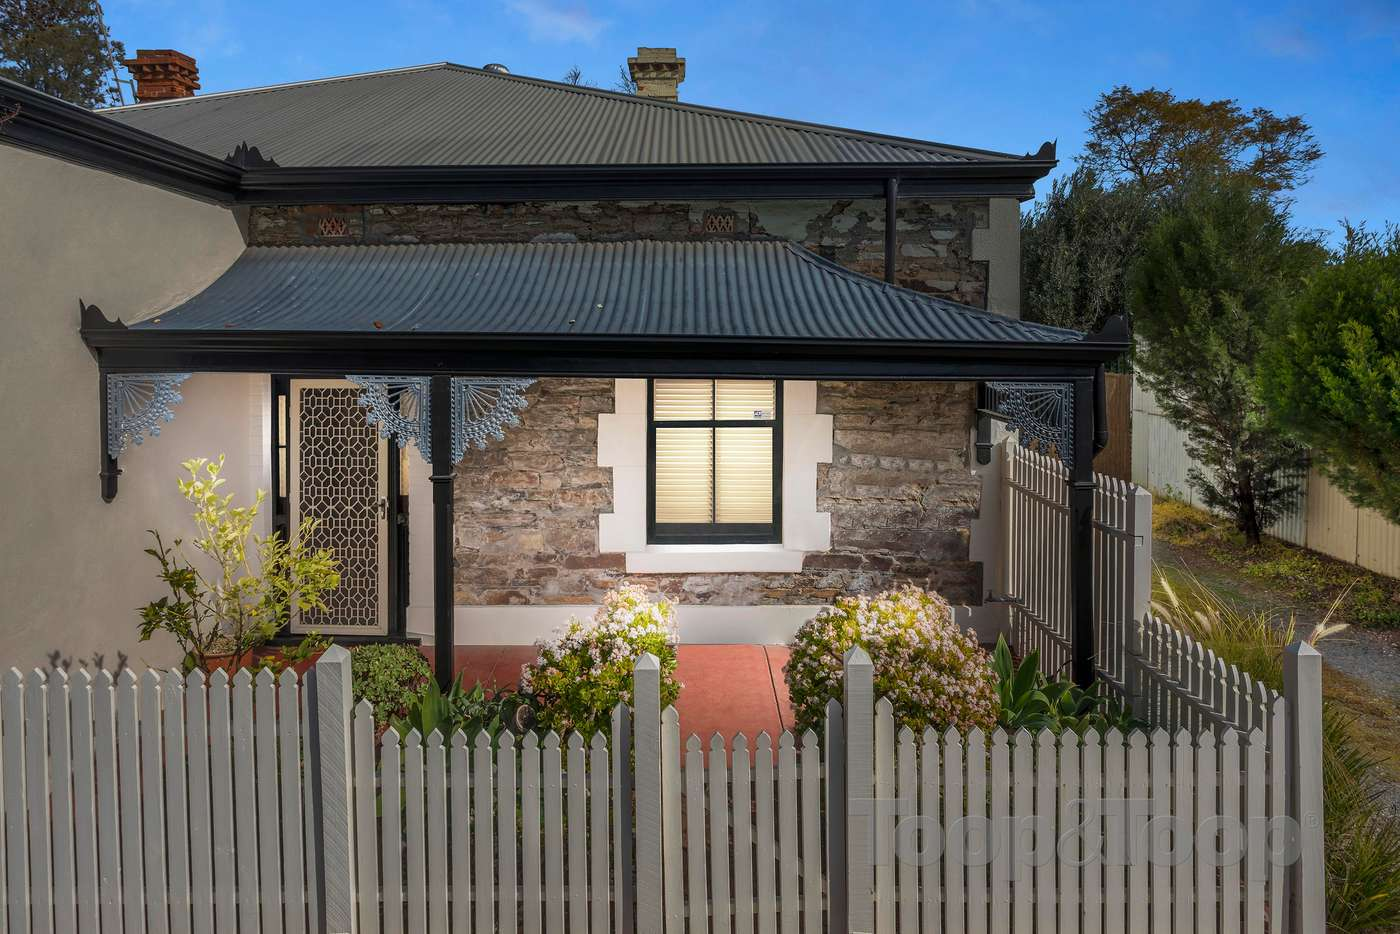 Main view of Homely house listing, 14 Eleventh Street, Bowden SA 5007